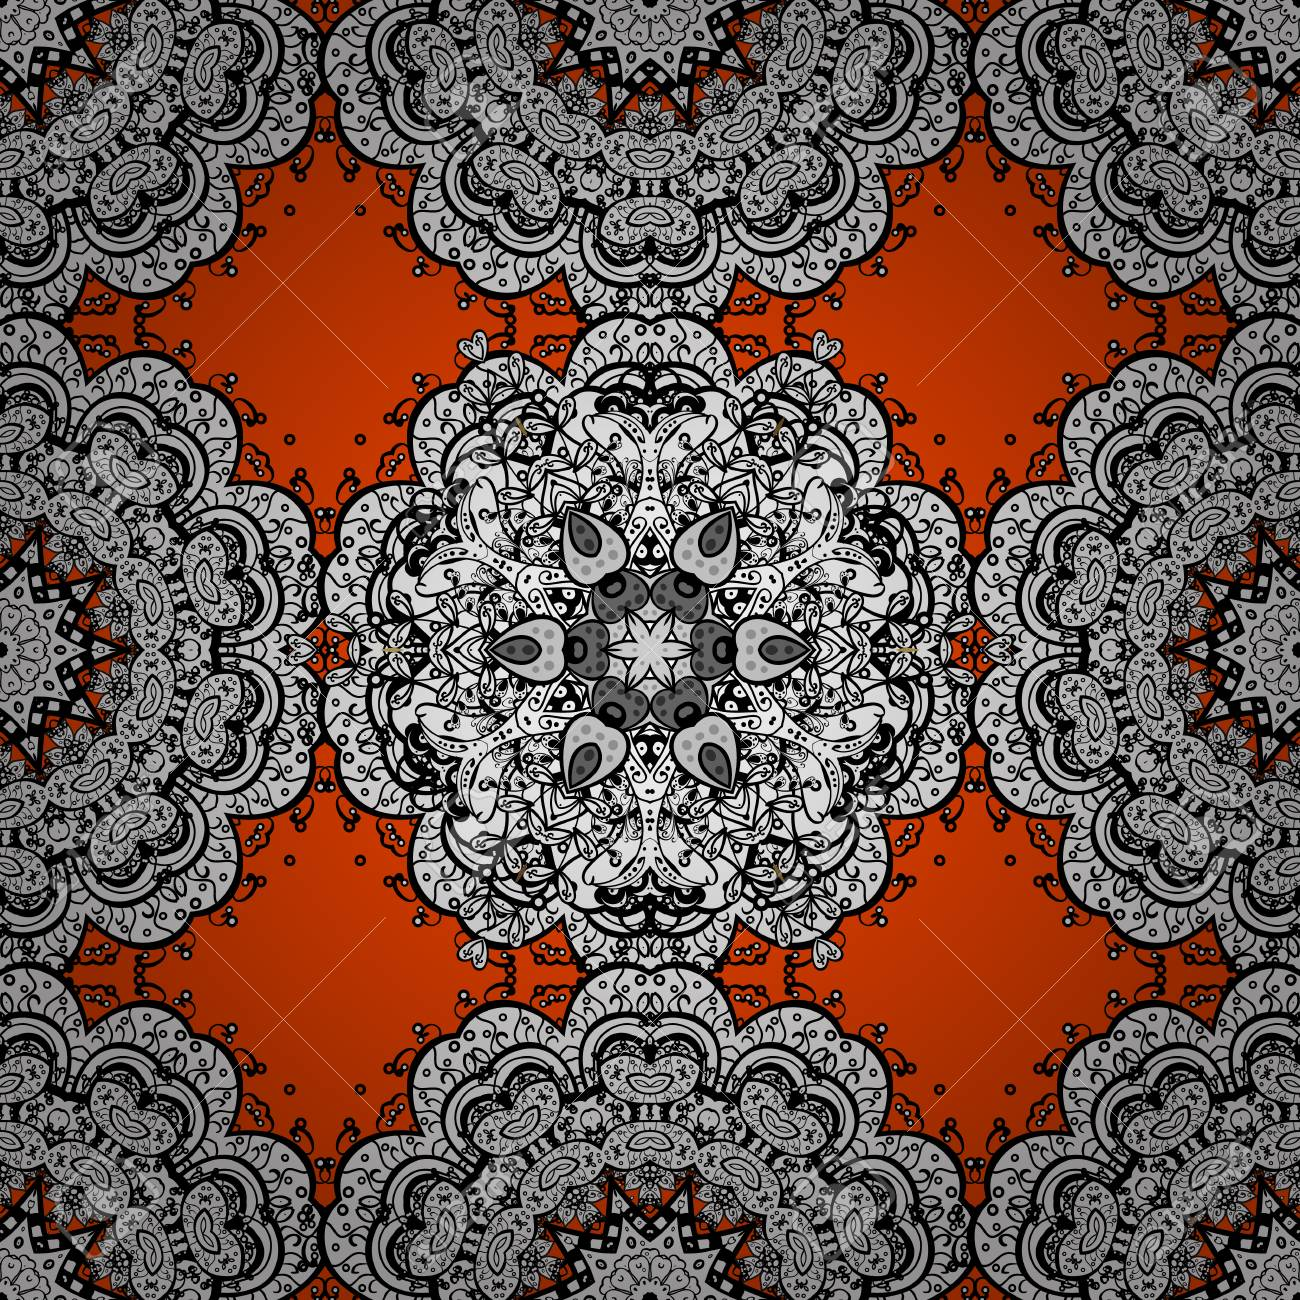 Vector illustration white on orange background seamless medieval seamless medieval floral royal pattern decorative symmetry arabesque good for greeting card for birthday invitation or banner vector illustration stopboris Choice Image